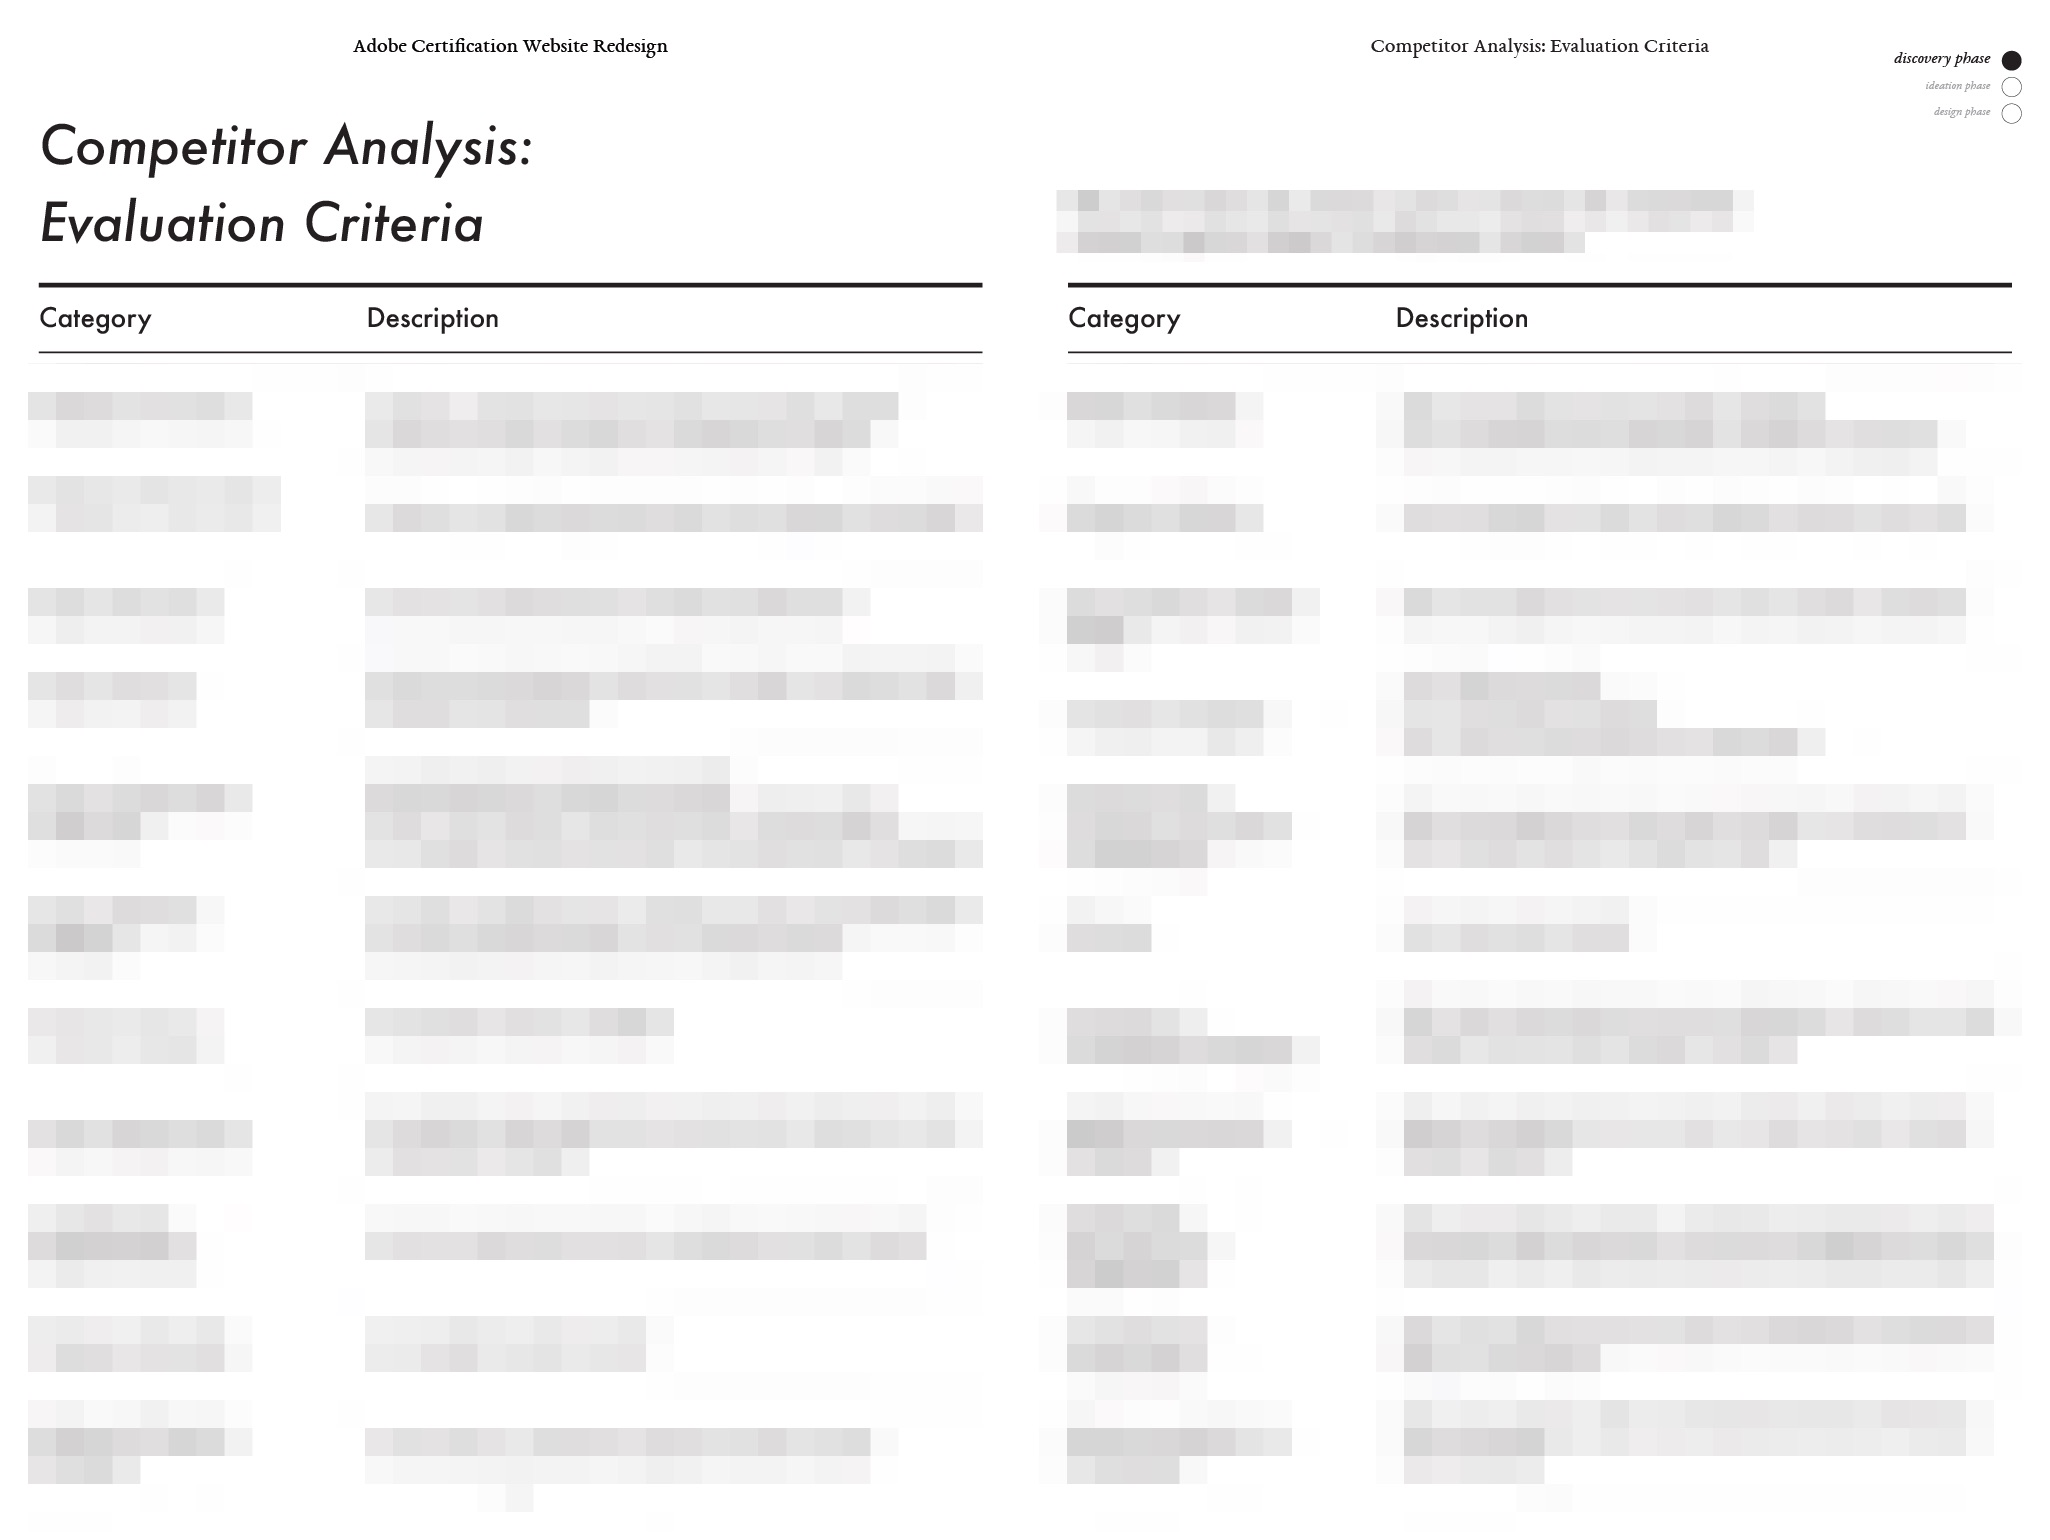 Excerpt from the Competitor Analysis section of the research report.